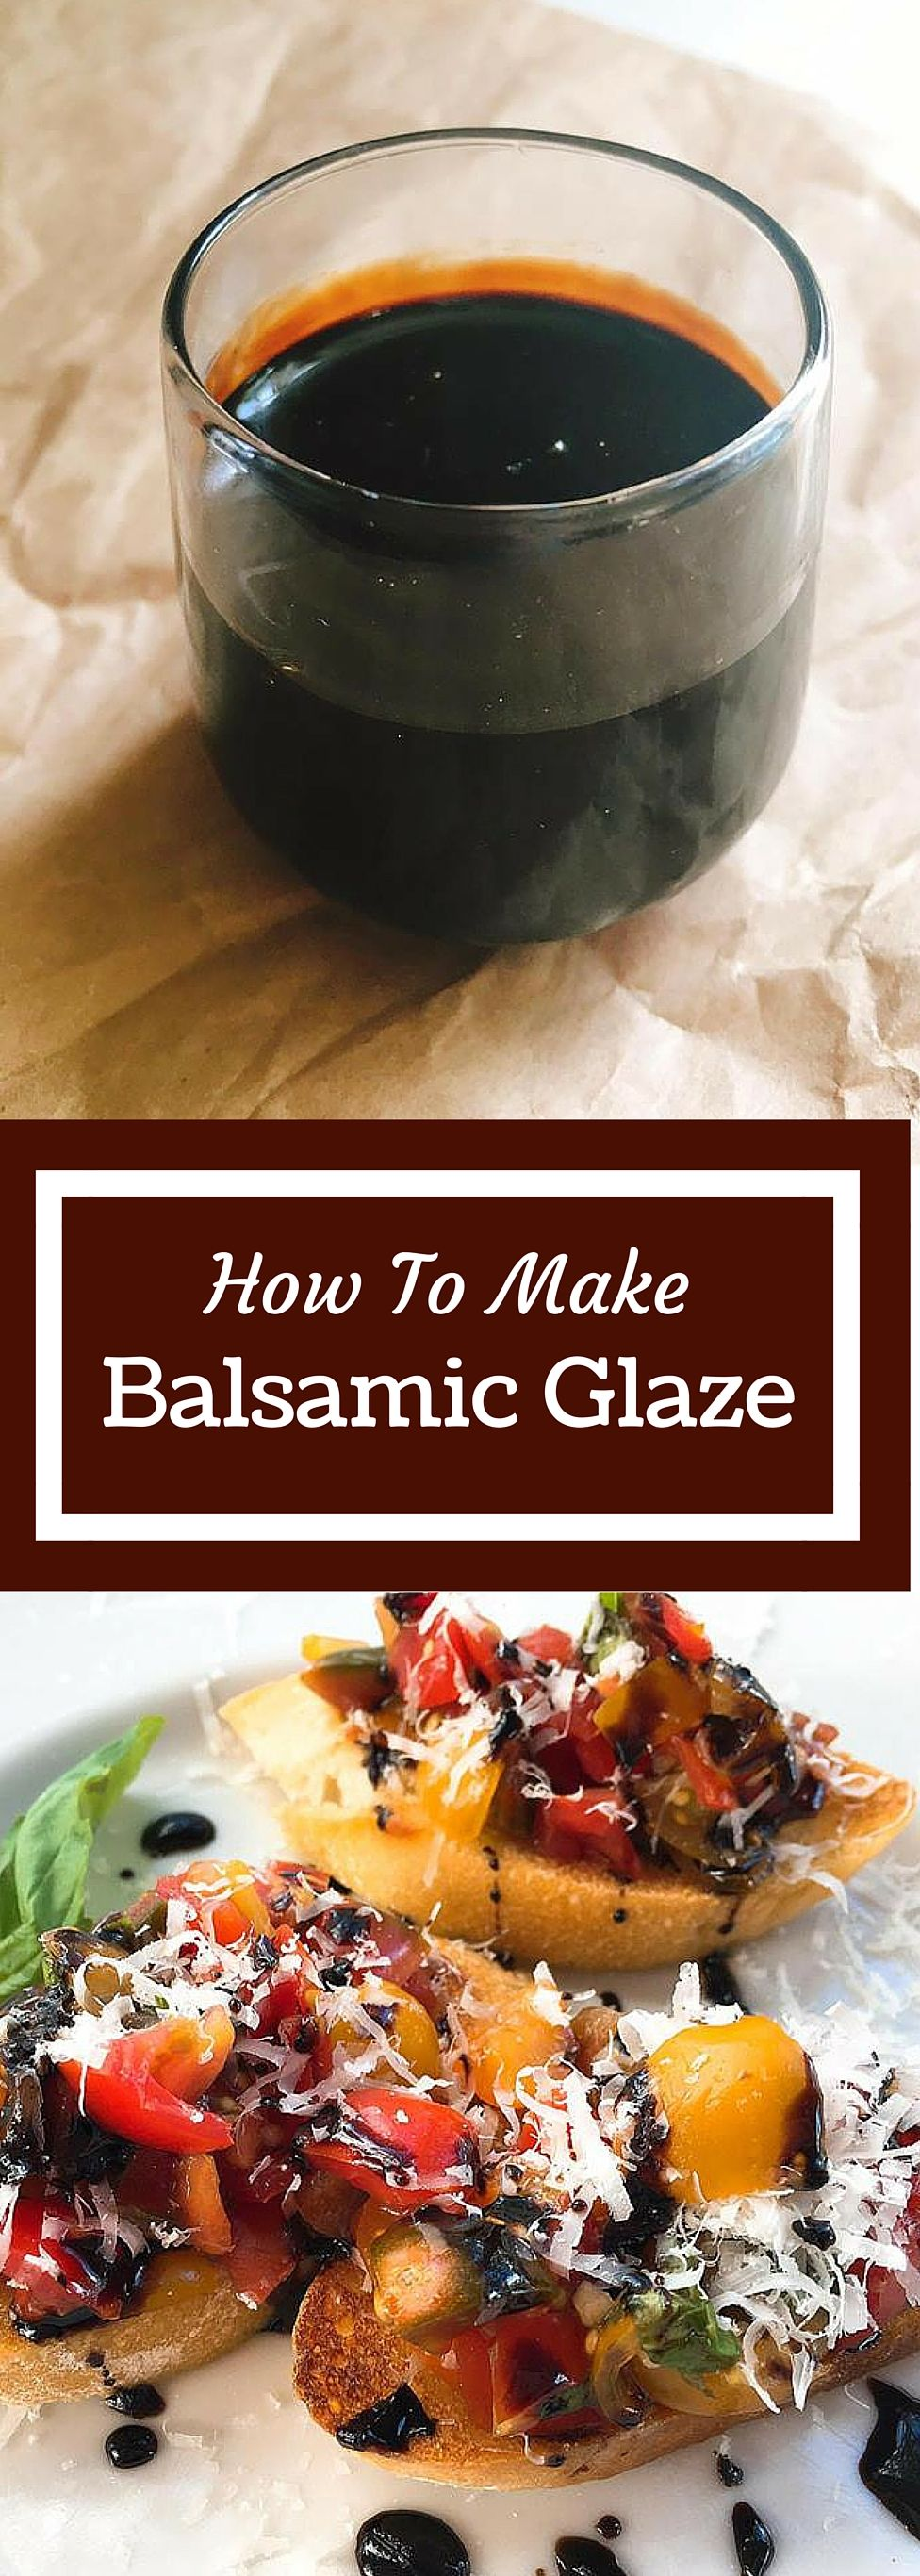 how to make balsamic glaze recipe metals cubes and spoons